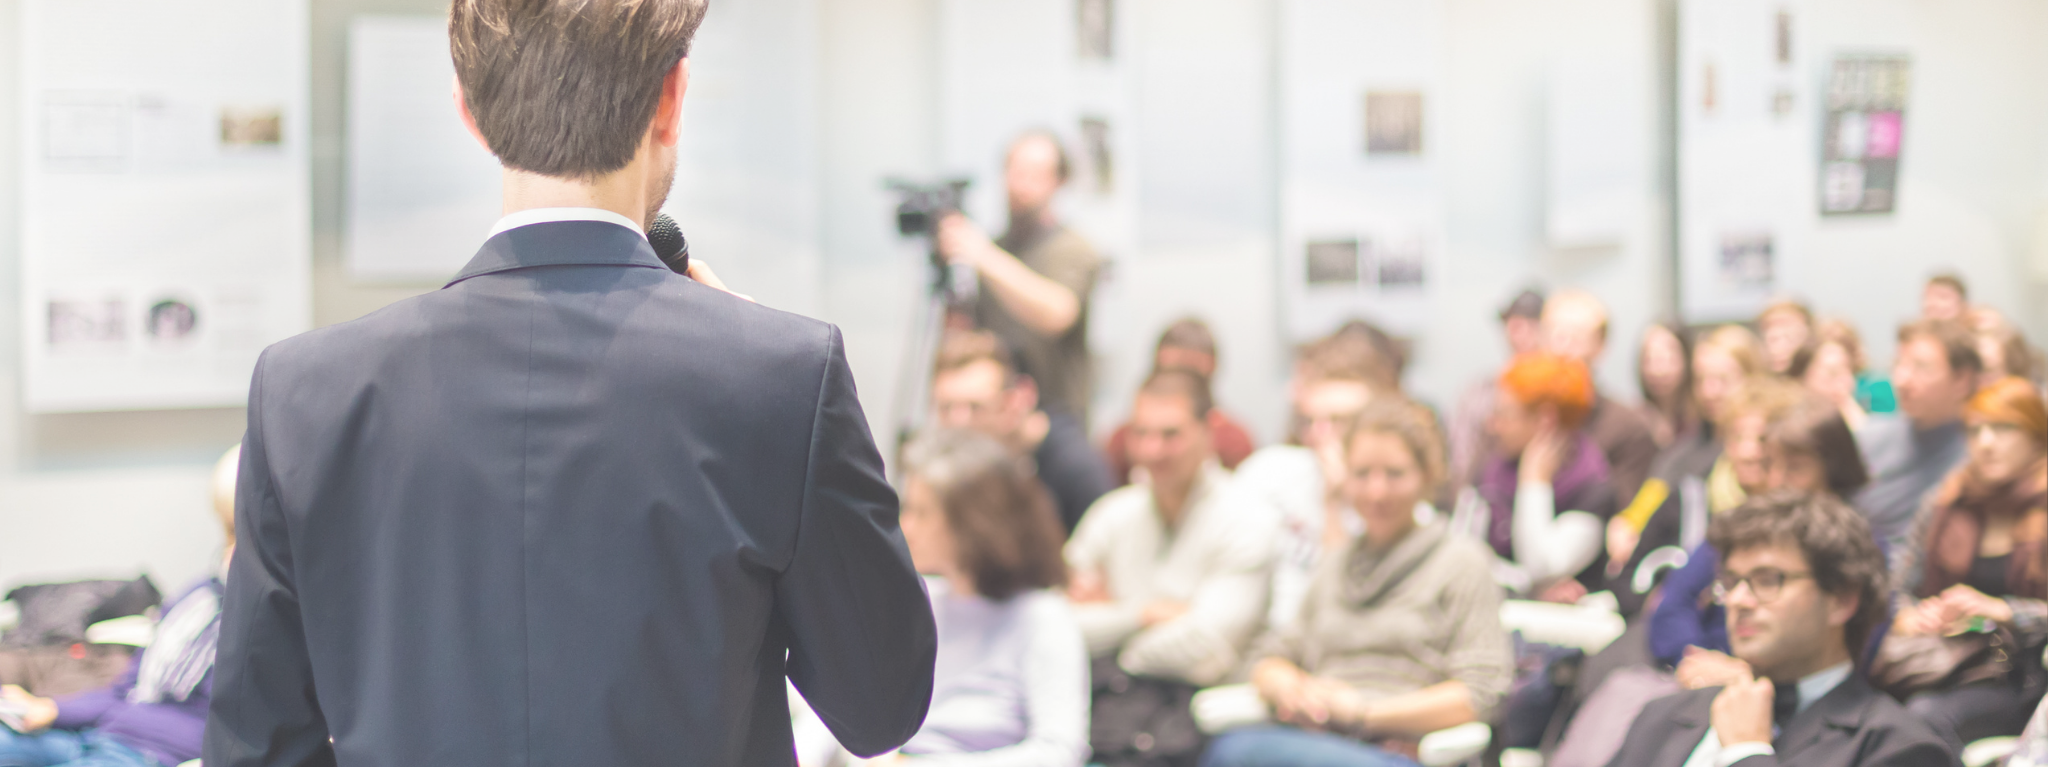 3 Ways Move Your Audience to Action